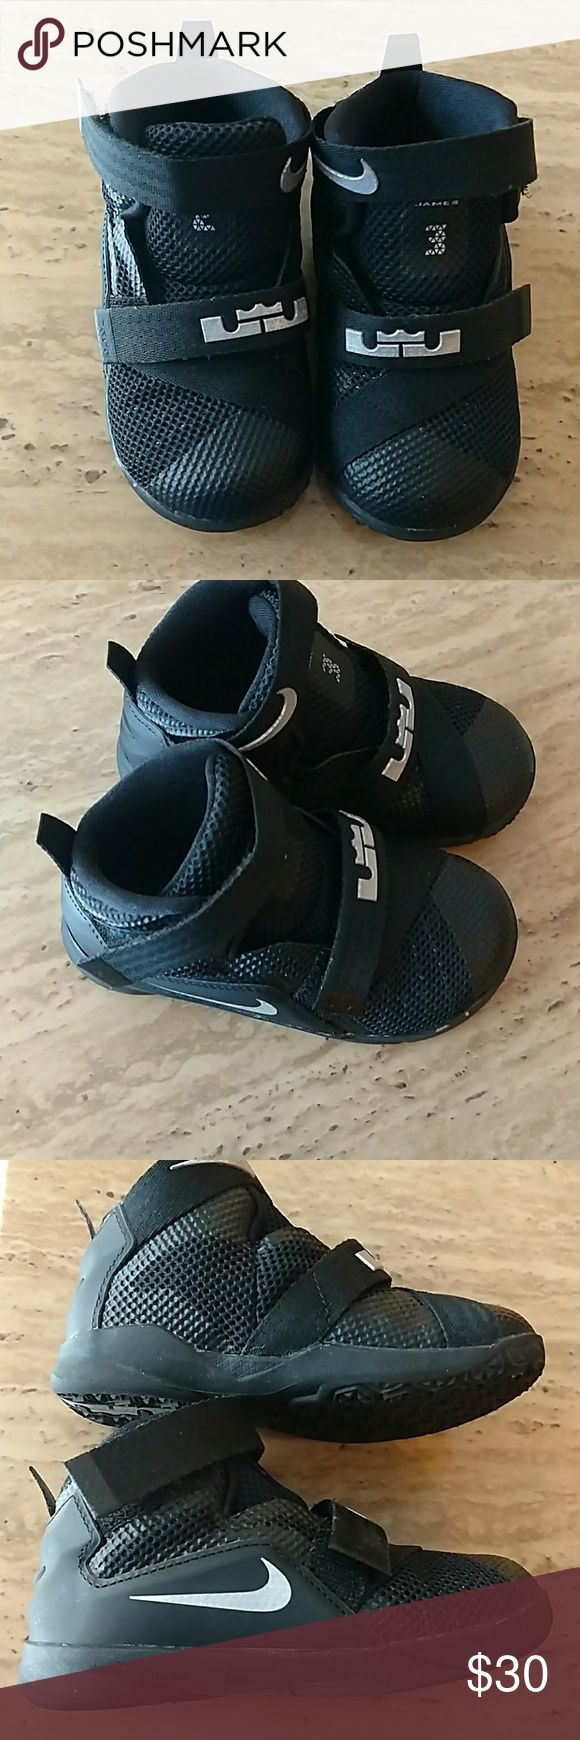 LeBron James Nike Shoes Black LeBron James Soldier 10 Shoes. They have Velcro Straps across the front. LeBron James symbol and Nike sign is grey. Only worn once. Were too small. Nike Shoes Sneakers